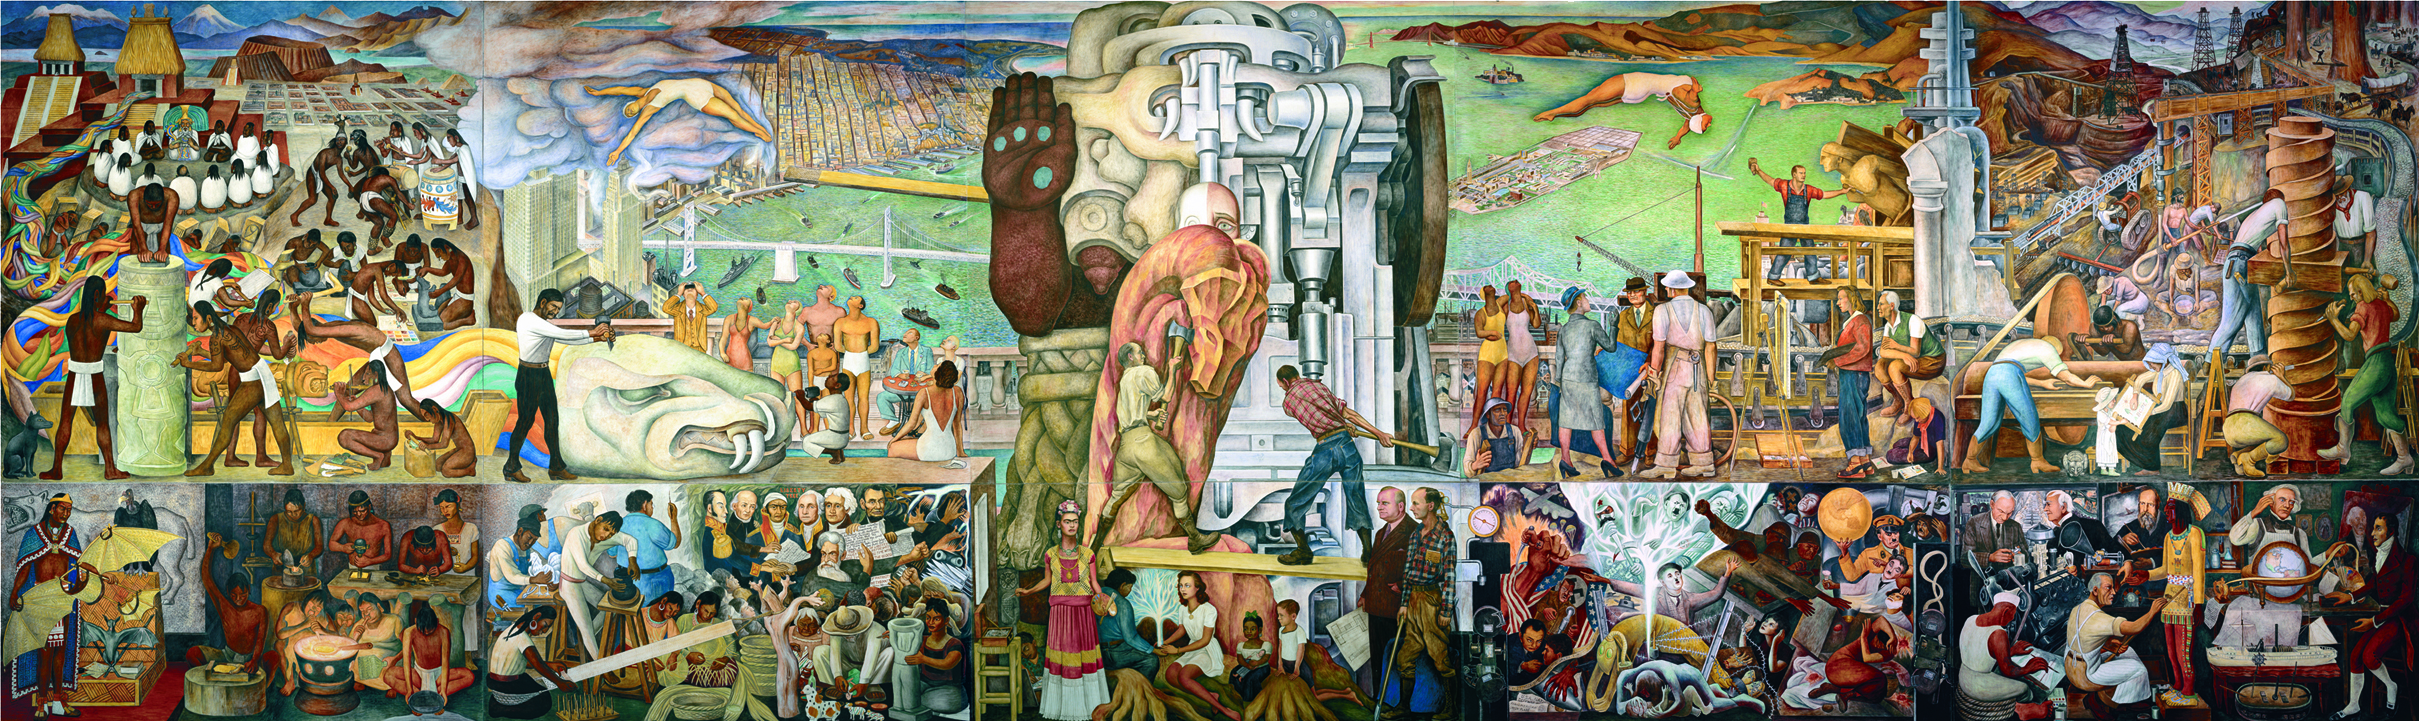 an introduction to the life of diego rivera one of modern mexicos original painters Along with diego rivera and josé clemente orozco, he established mexicanmore 9 kat von d kat von d, best known as kat von d, is a mexican-born american tattoo artist, model, musician and television personality.